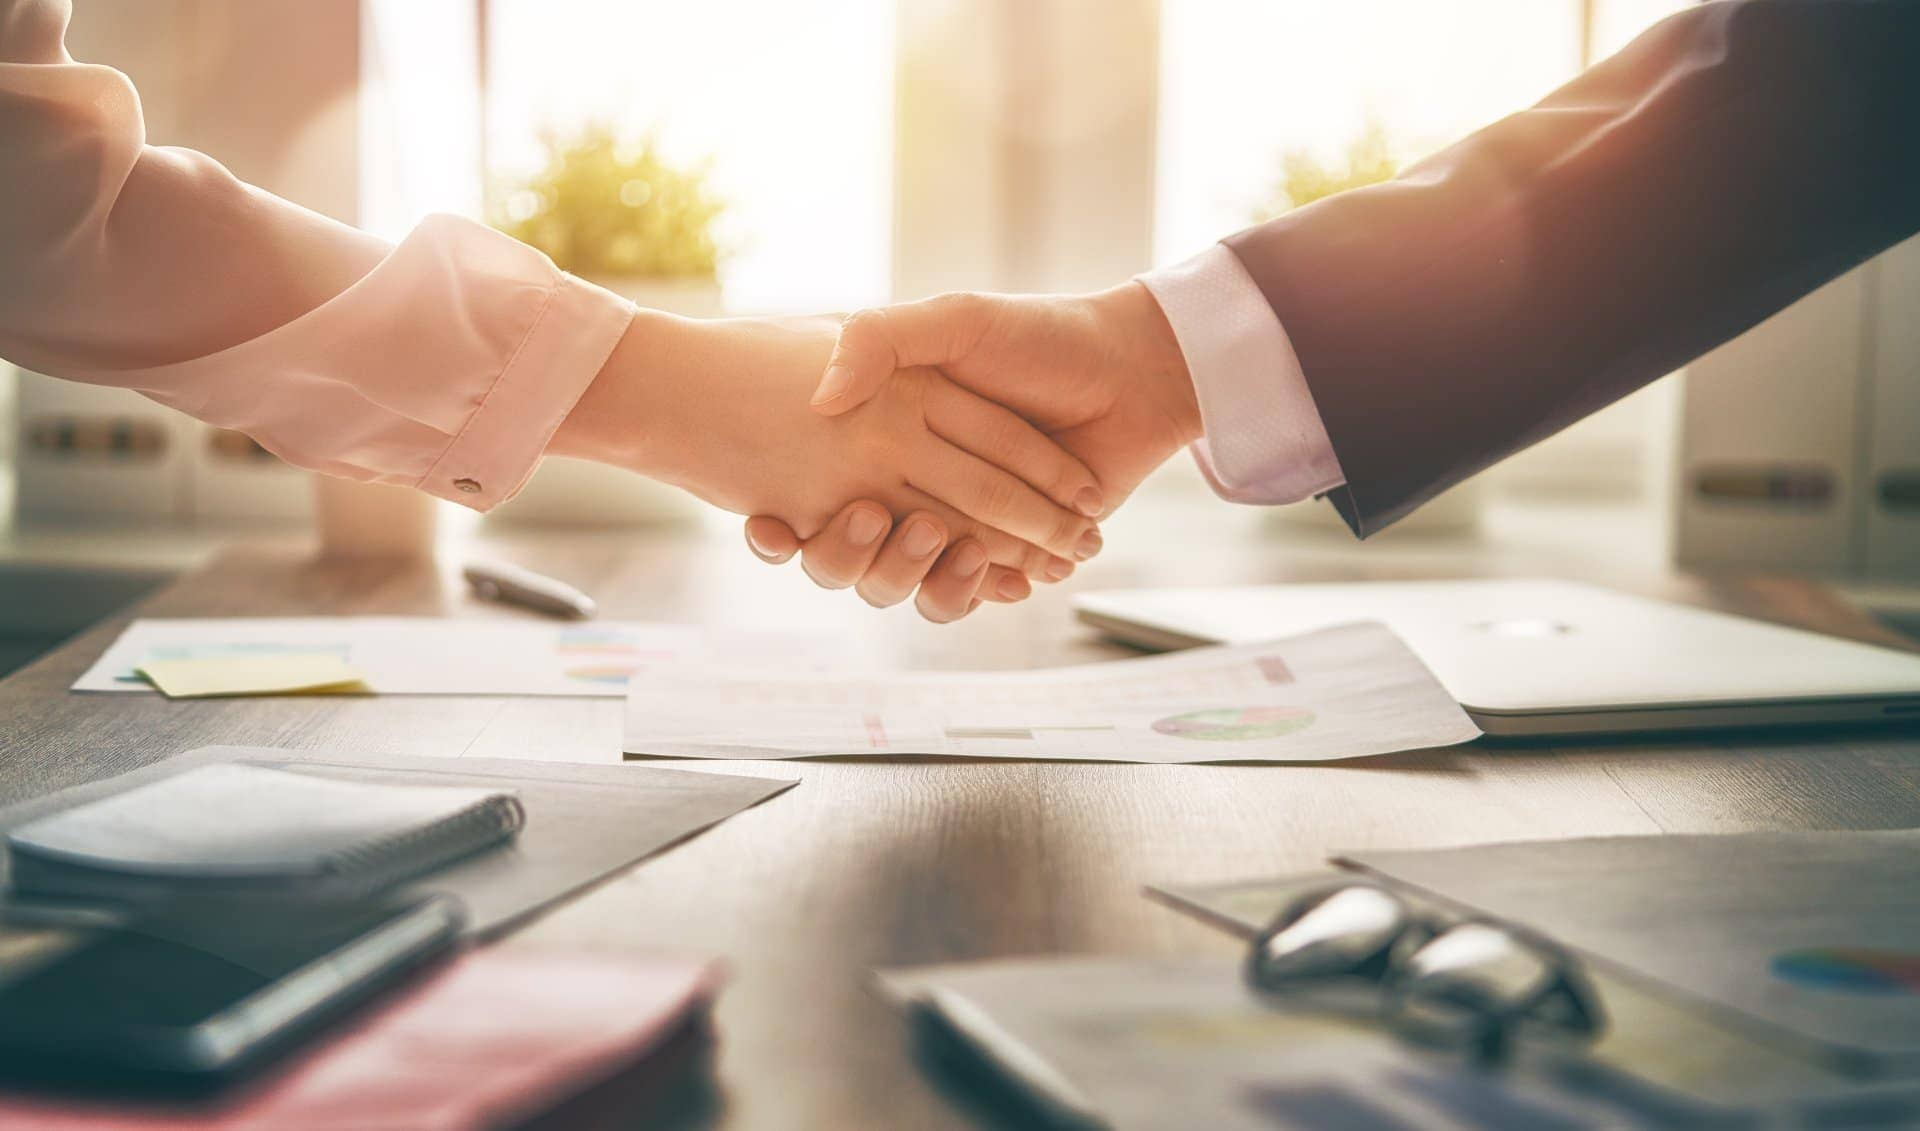 cpa las vegas shaking hands with small business owner